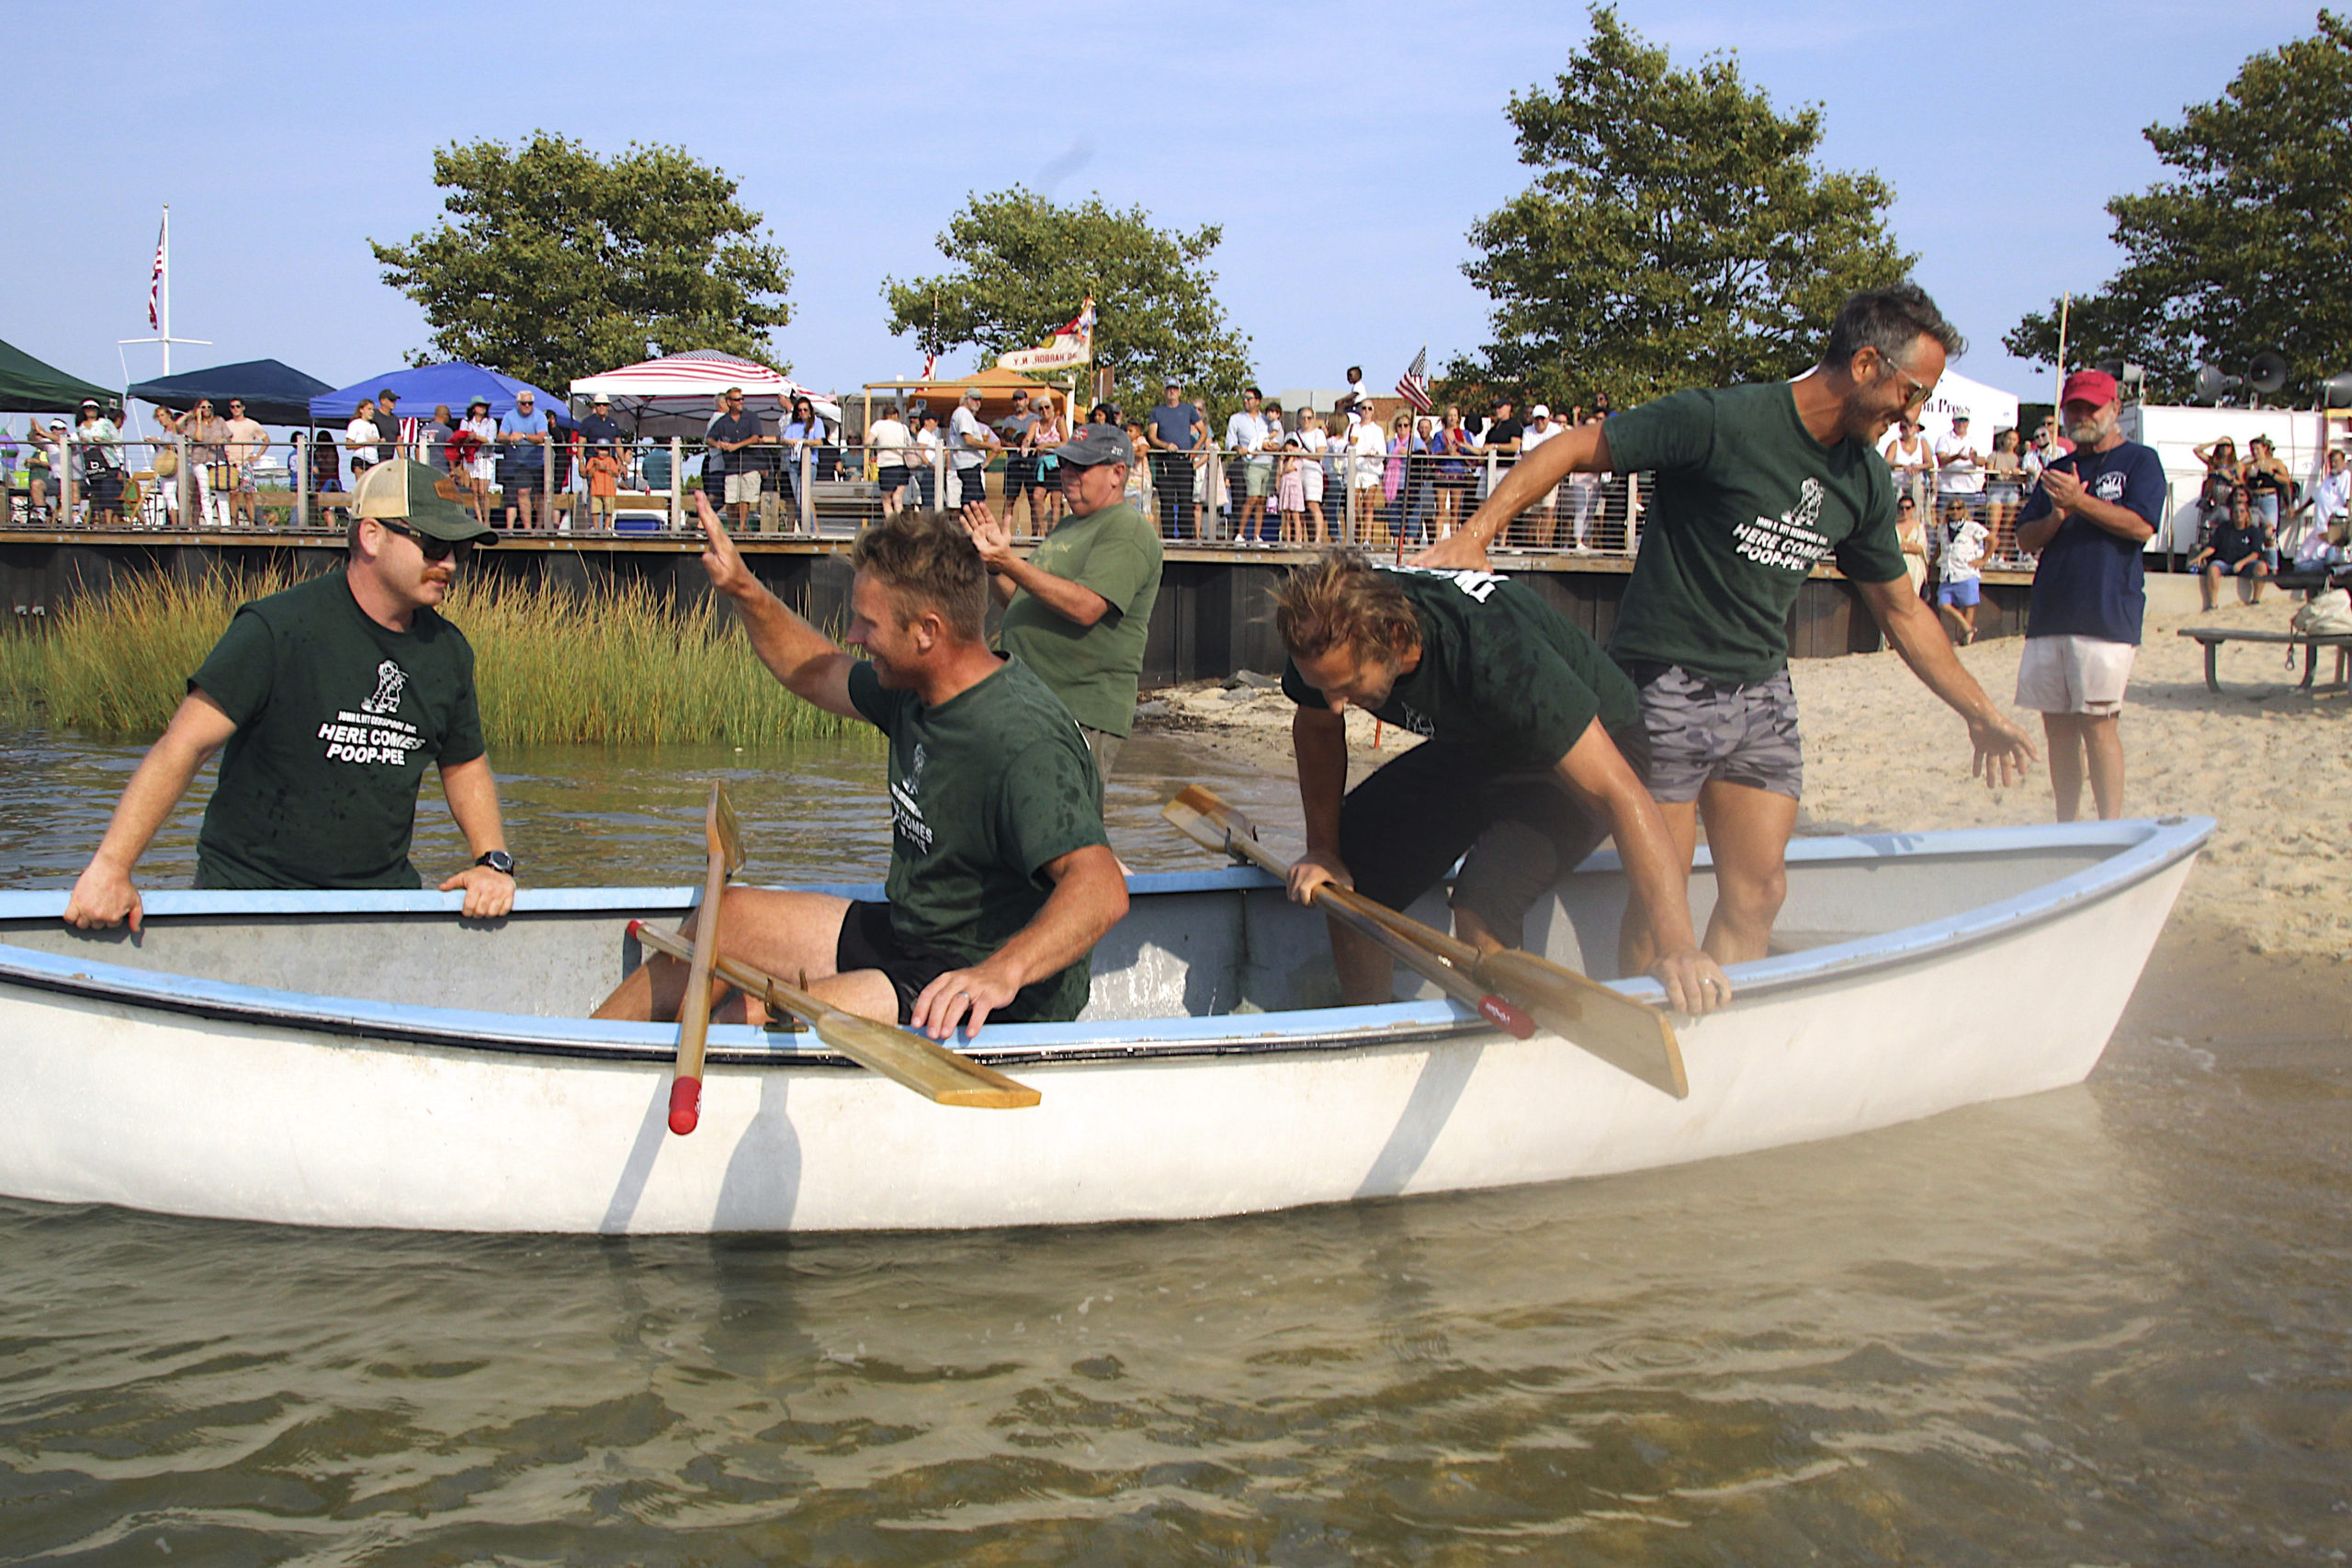 The champion men's whaleboat team from John K. Ott Cesspool Services included, from left to right, Jeff Greenwald, Brian O'Sullivan, Pete Finelli, Eric Bramoff and Kevin O'Brien Jr.   KYRIL BROMLEY